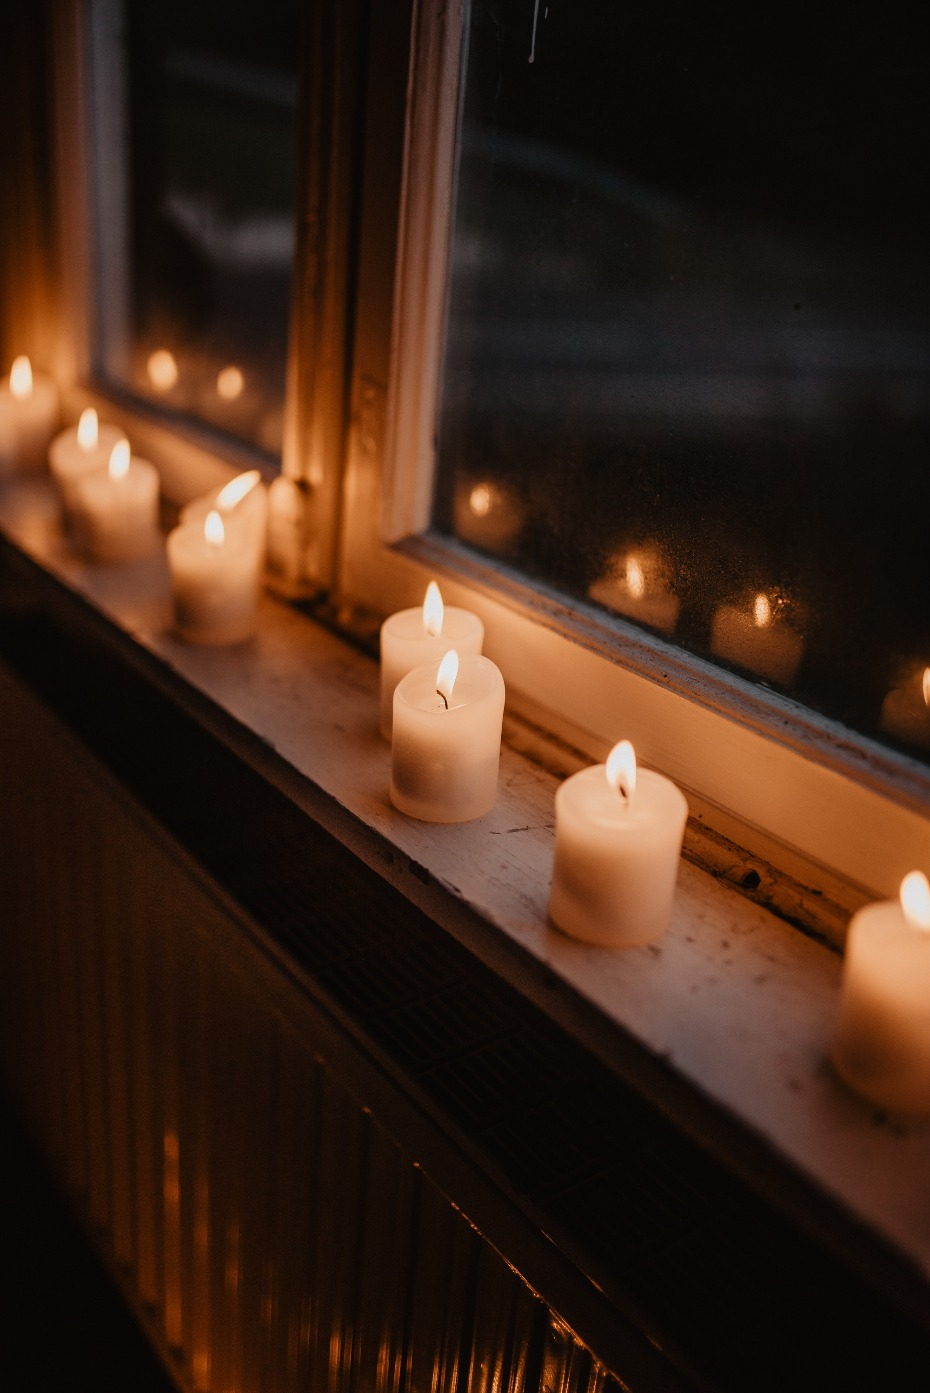 Candles make everything more romantic